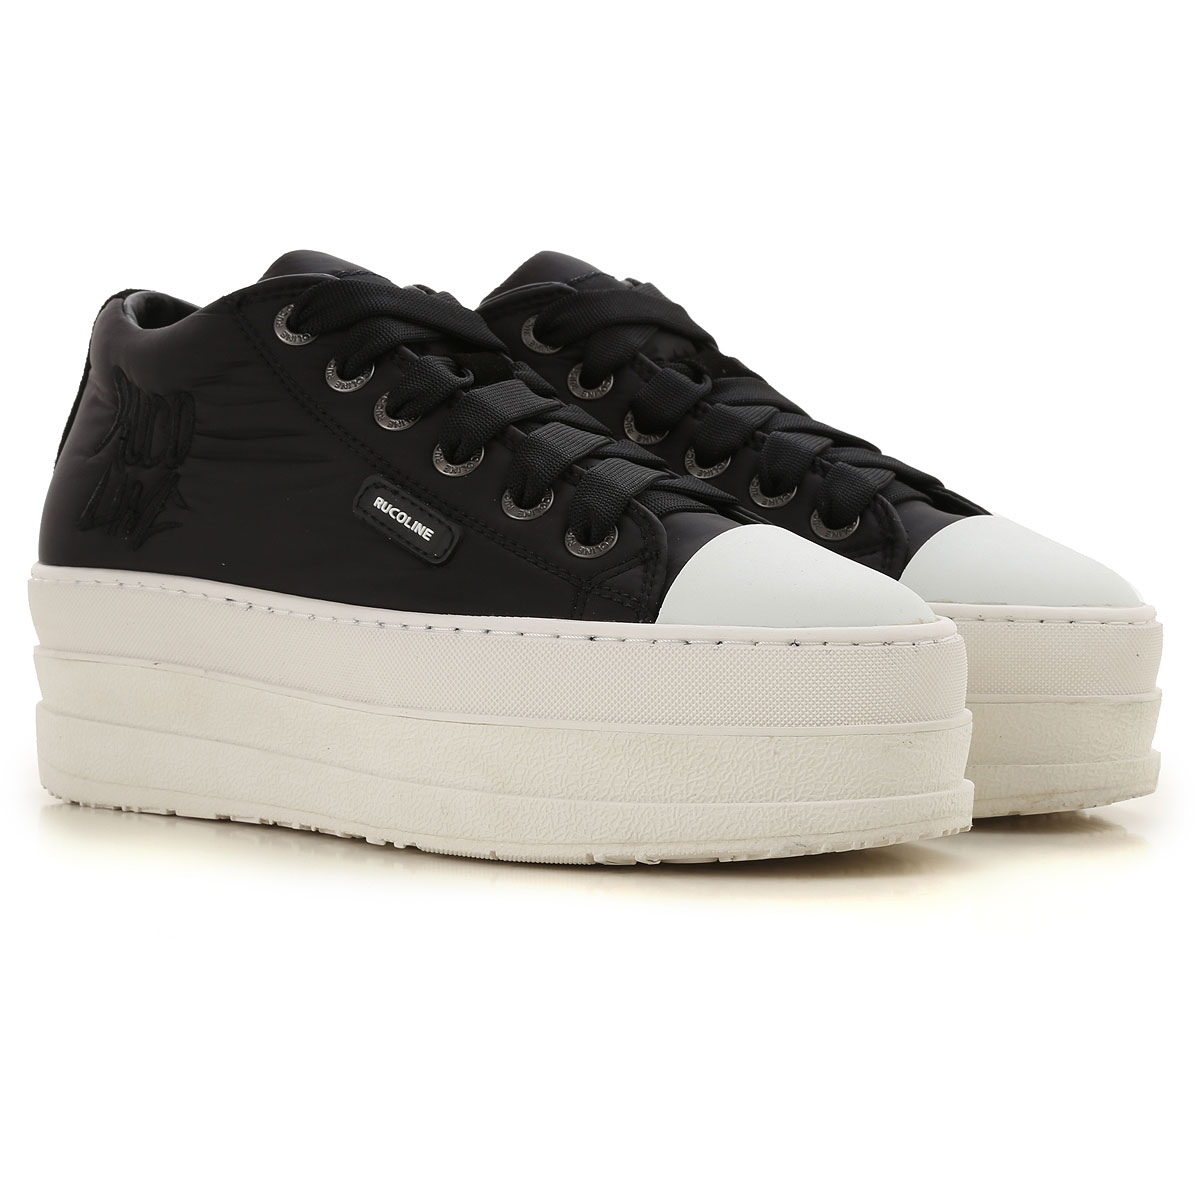 Image of Ruco Line Sneakers for Women, Black, Nylon, 2017, 10 5 6